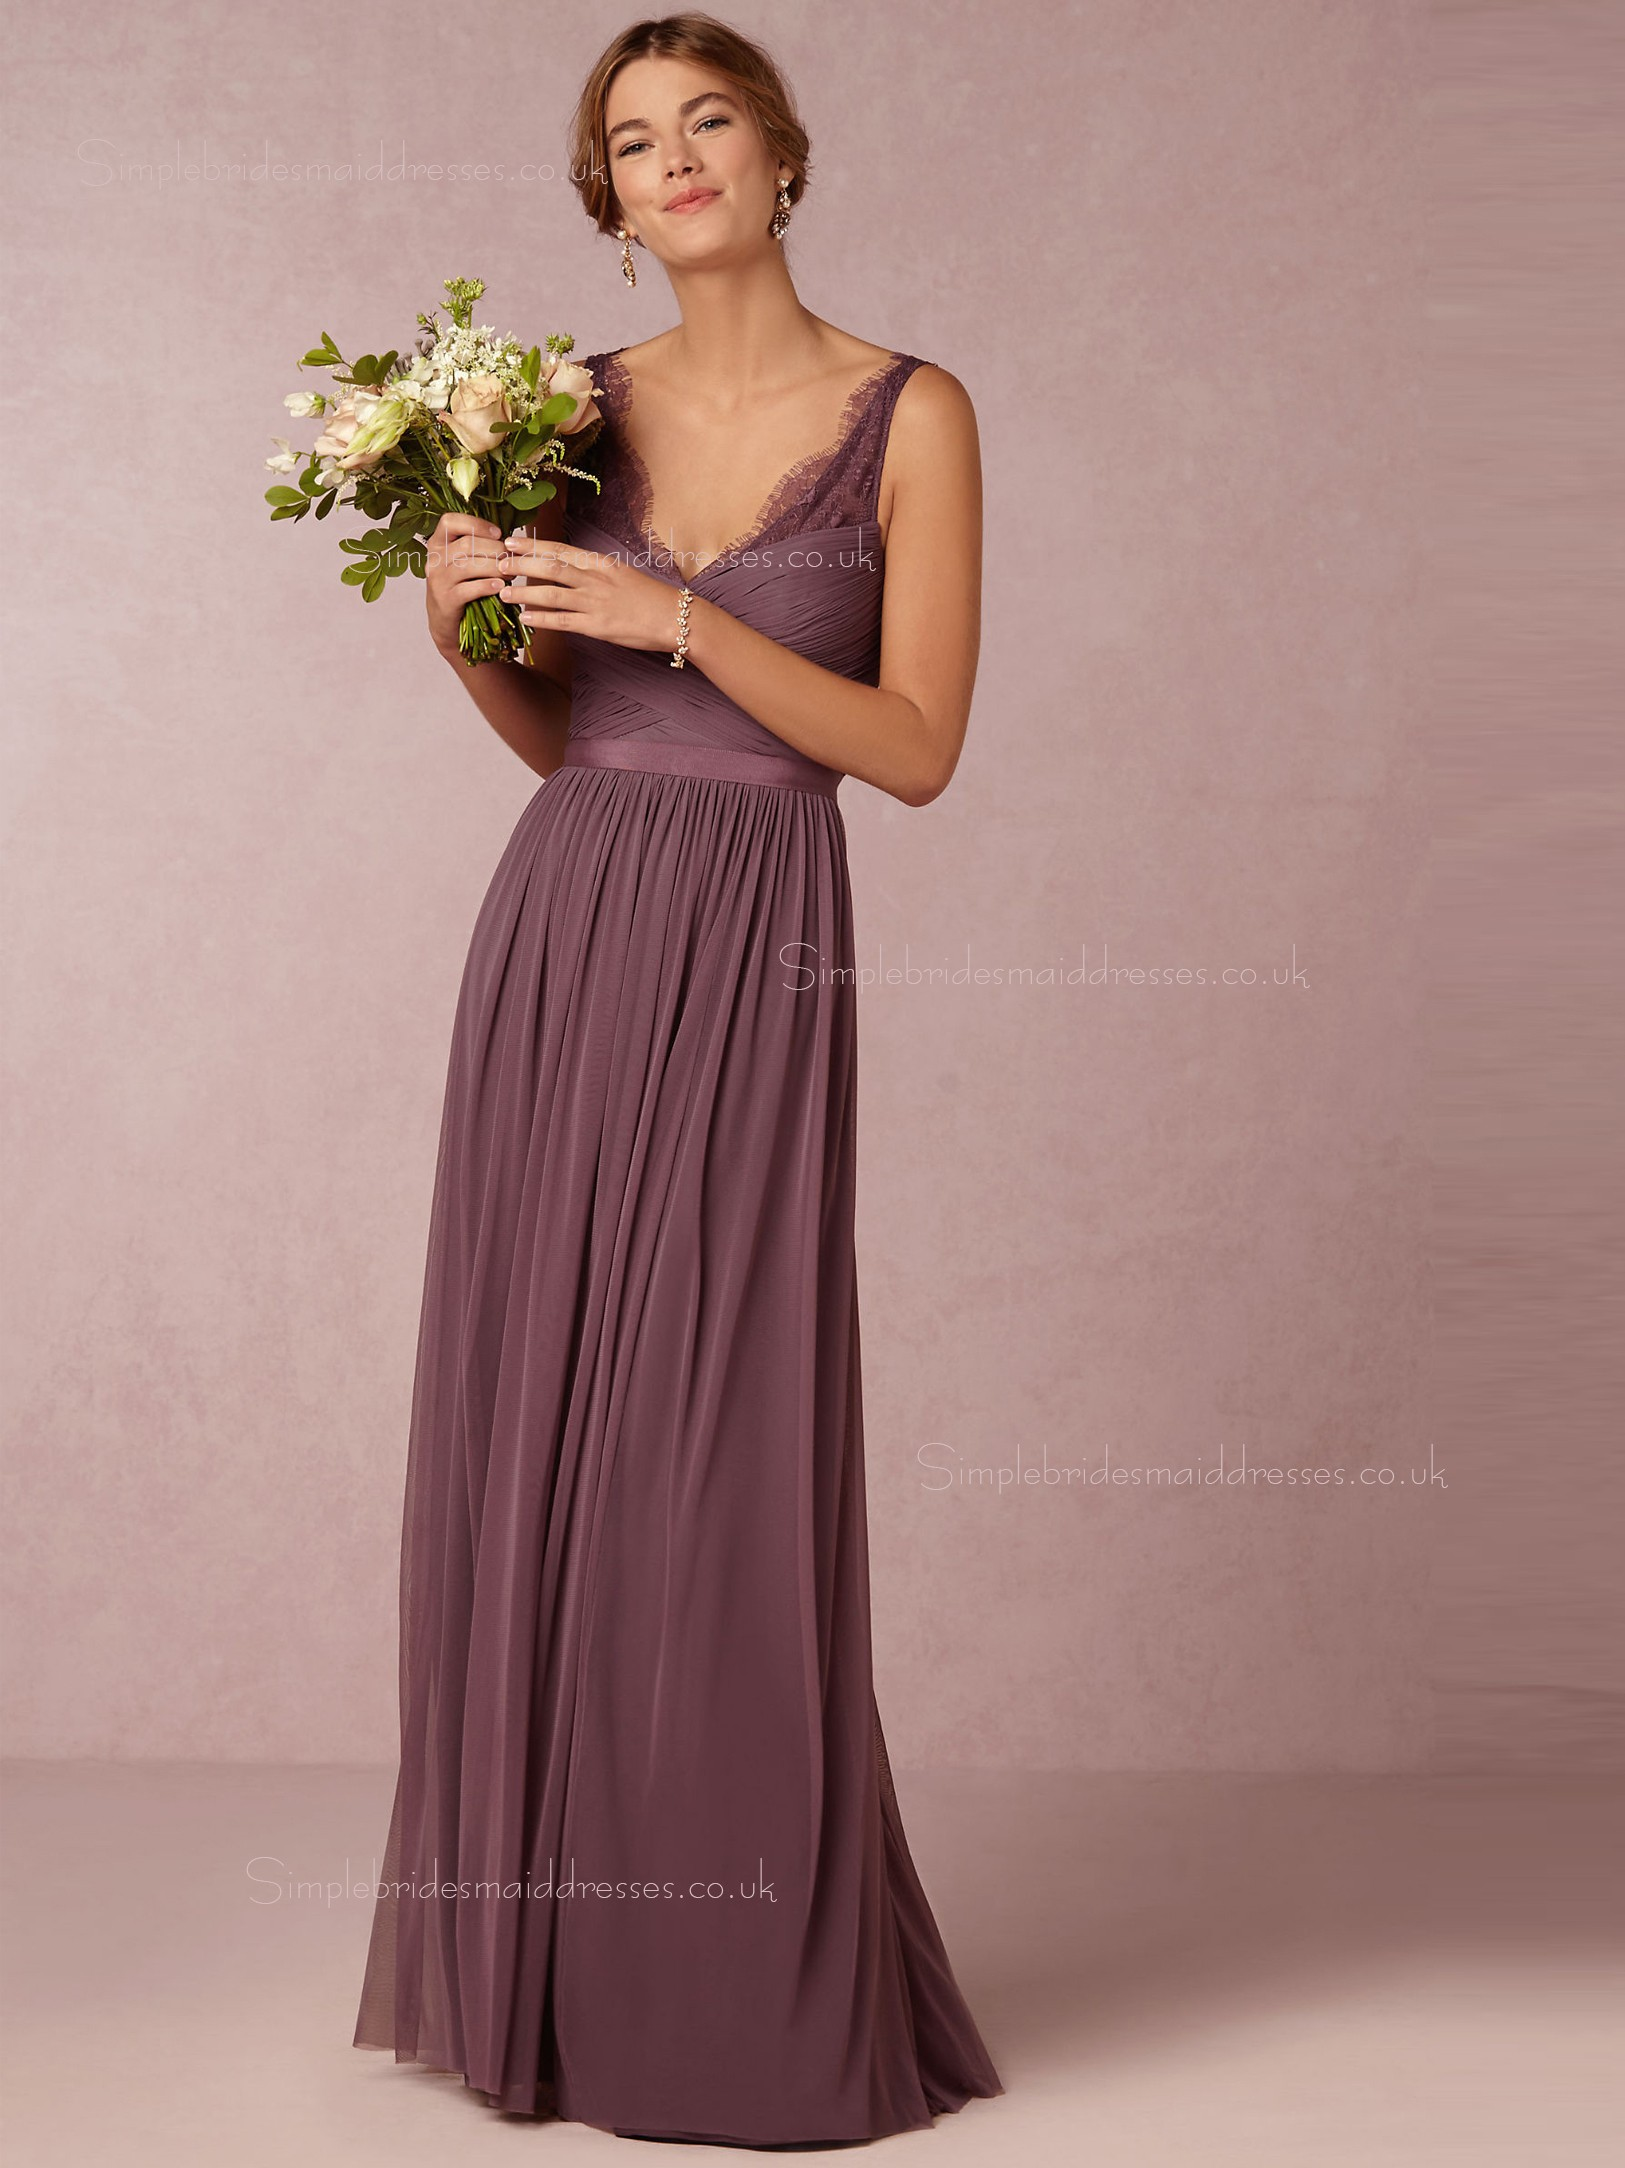 Wunderbar Bridesmaid Dress Sale Uk Ideen - Brautkleider Ideen ...